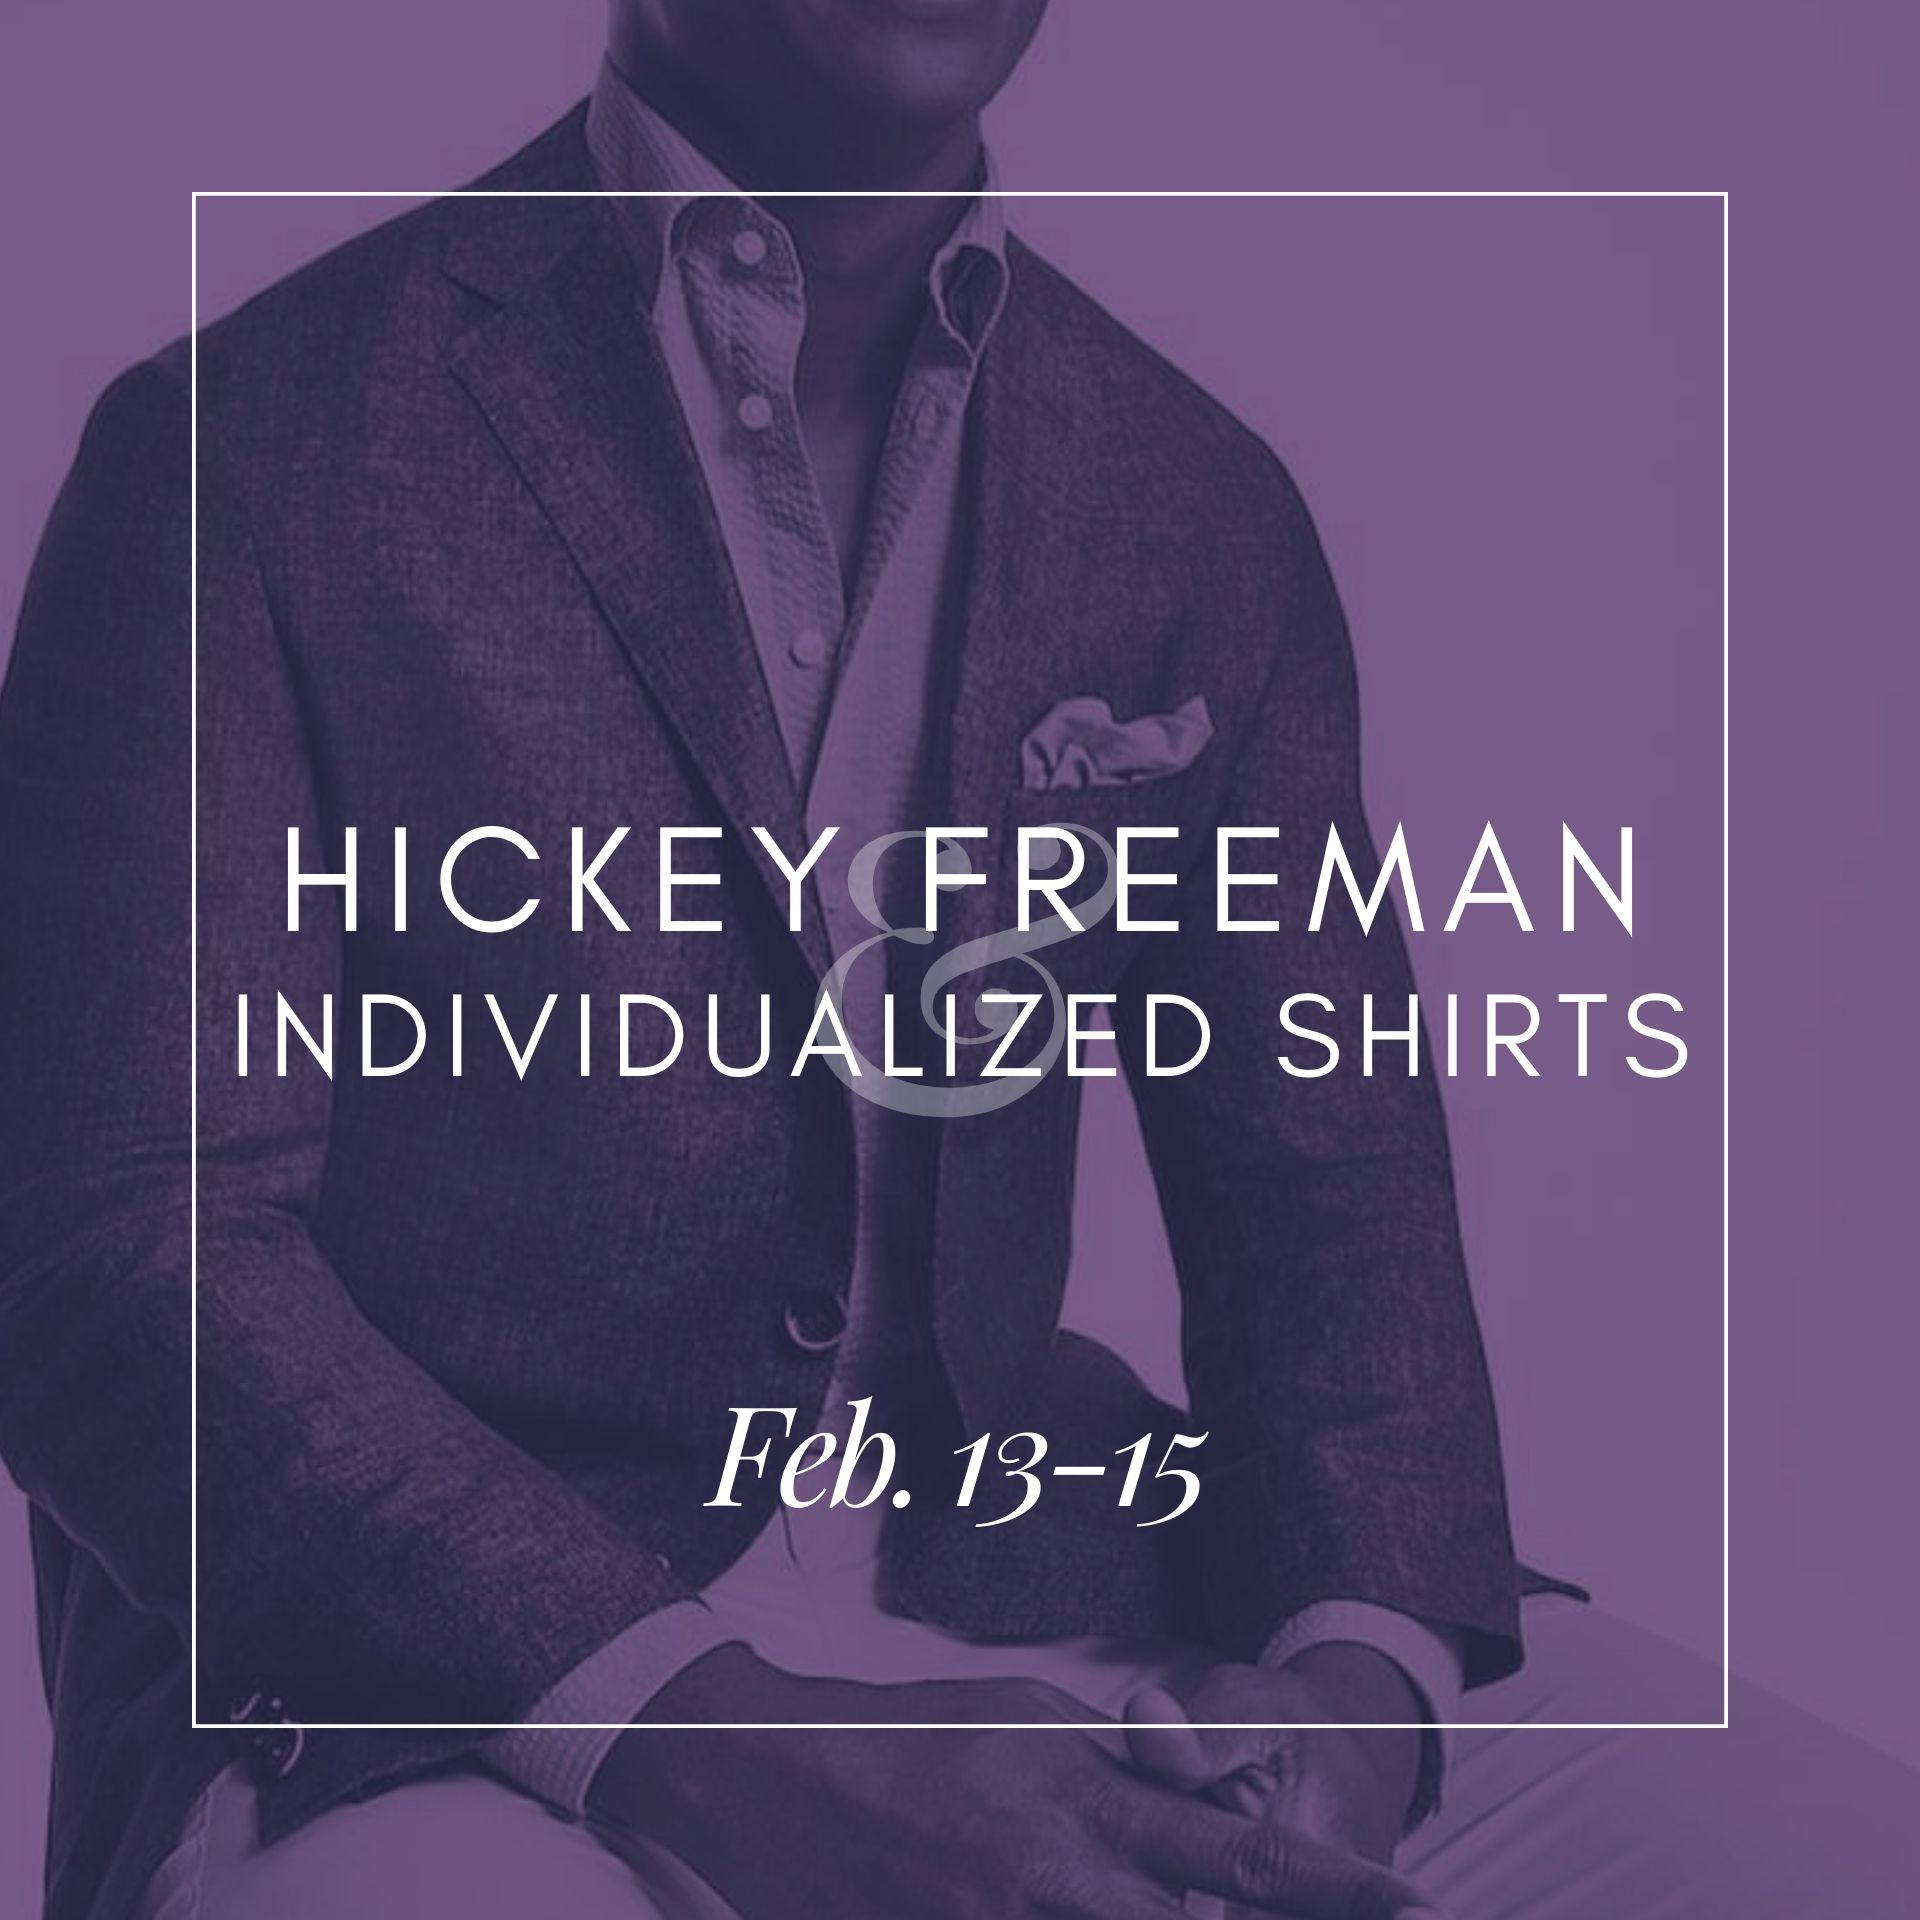 Hickey Freeman Event